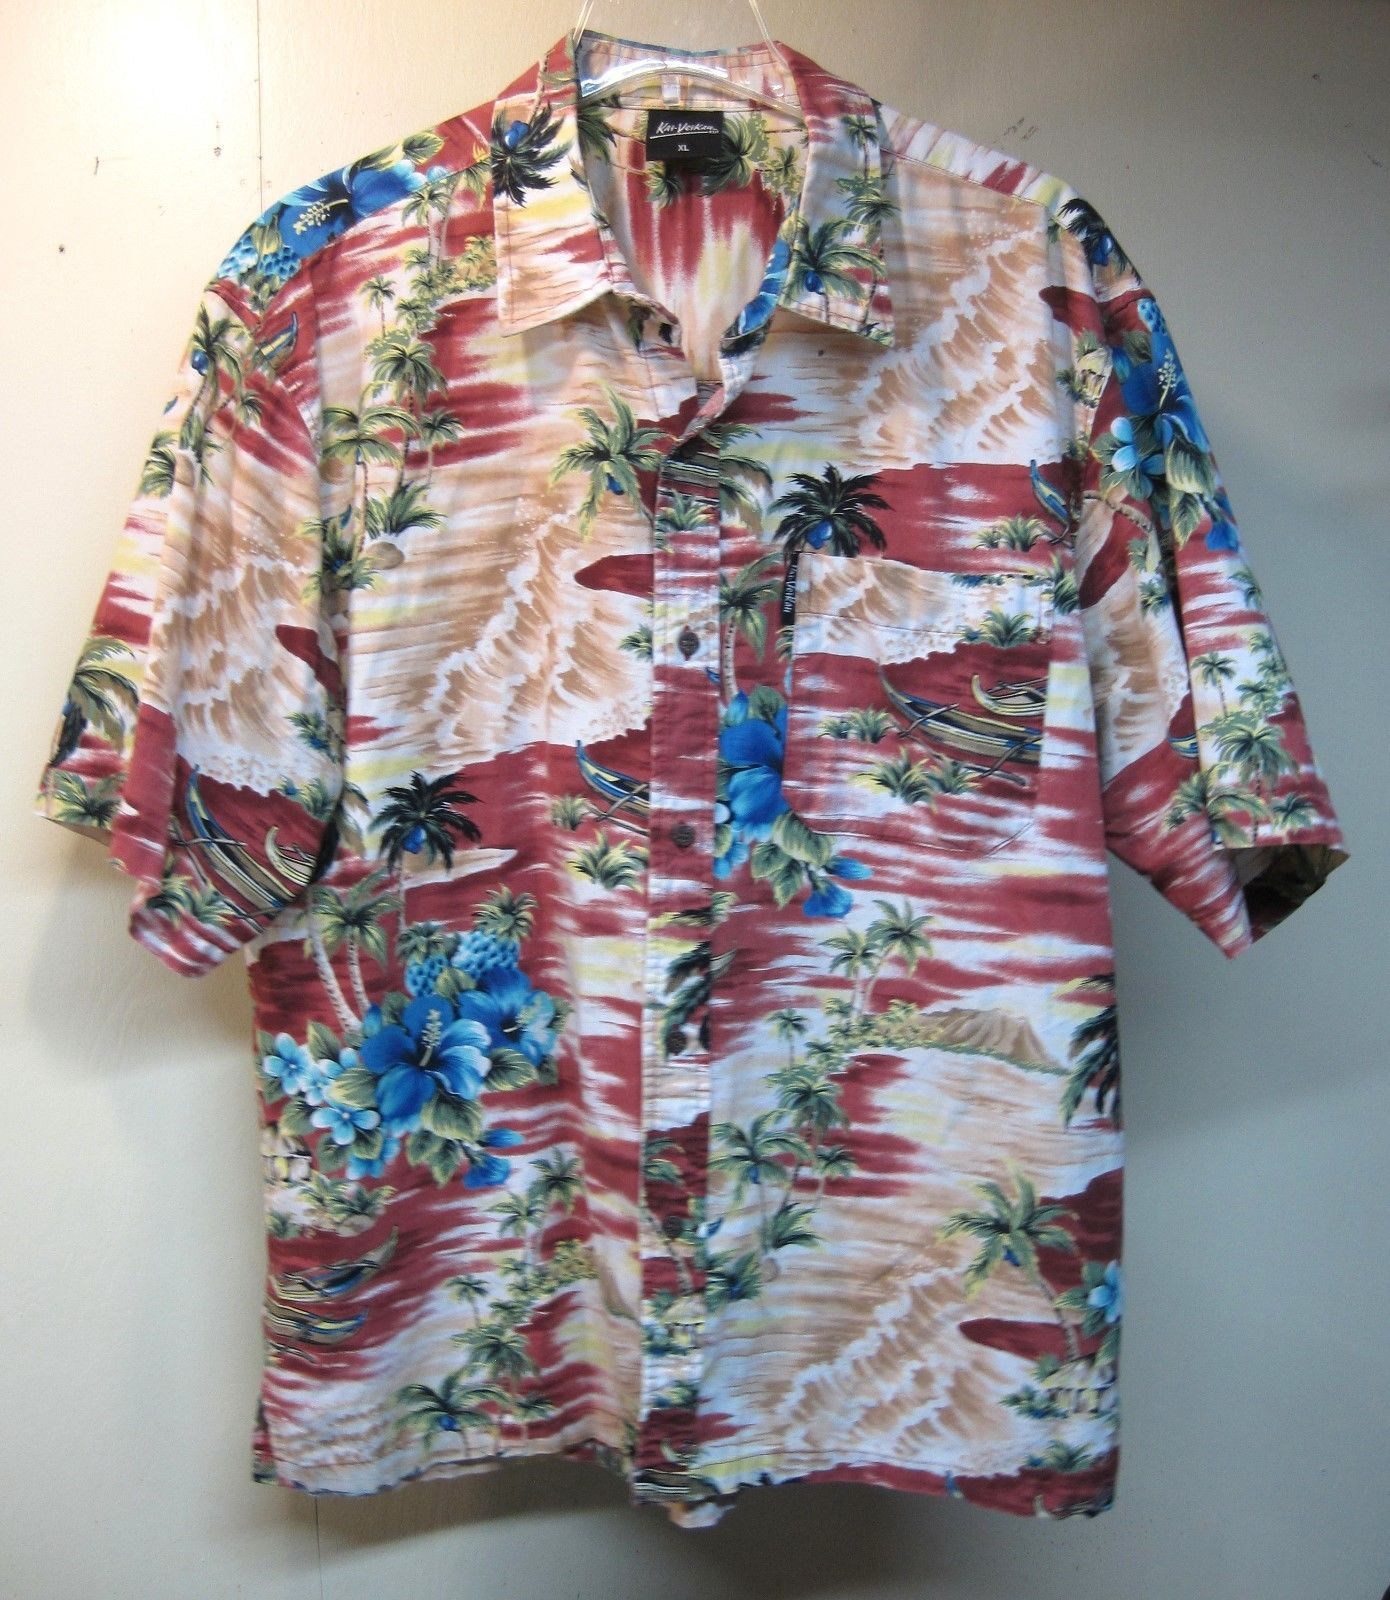 Primary image for Men's Hawaiian Shirt XL Kai-Veikau Fiji Outrigger Floral Valcano's Cotton B13